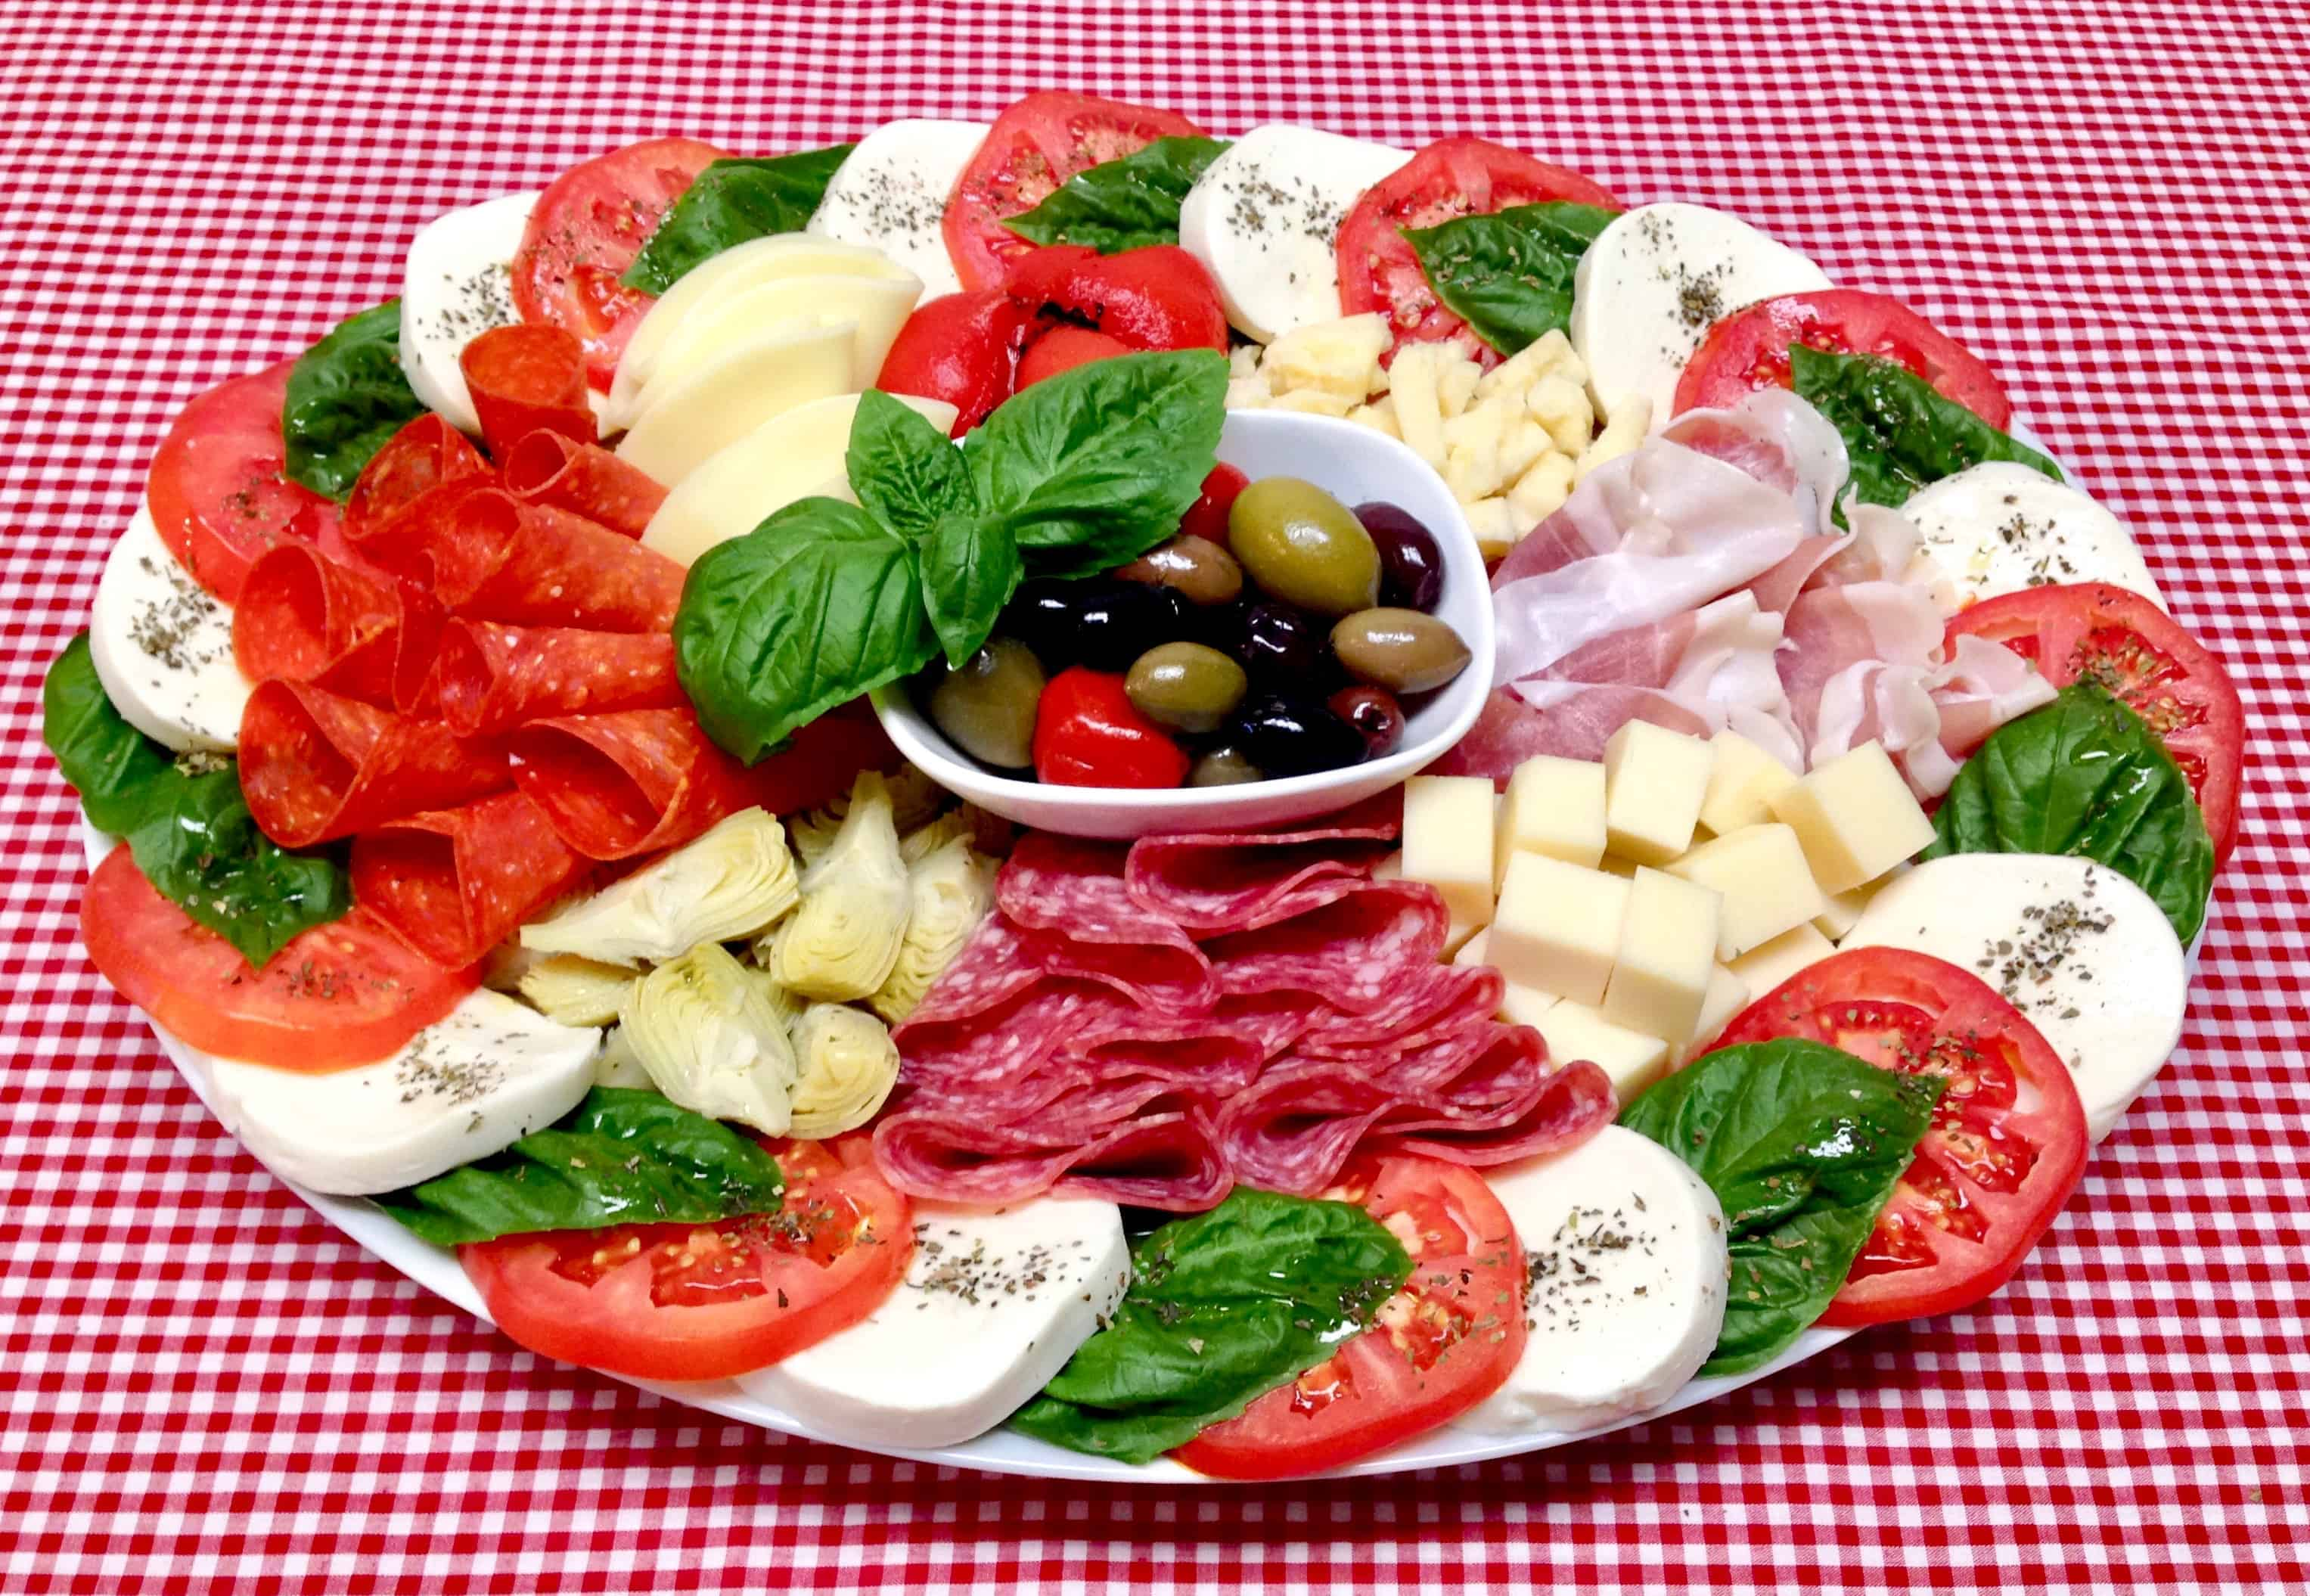 Italian Antipasti Platter Keto And Low Carb Keto Cooking Christian